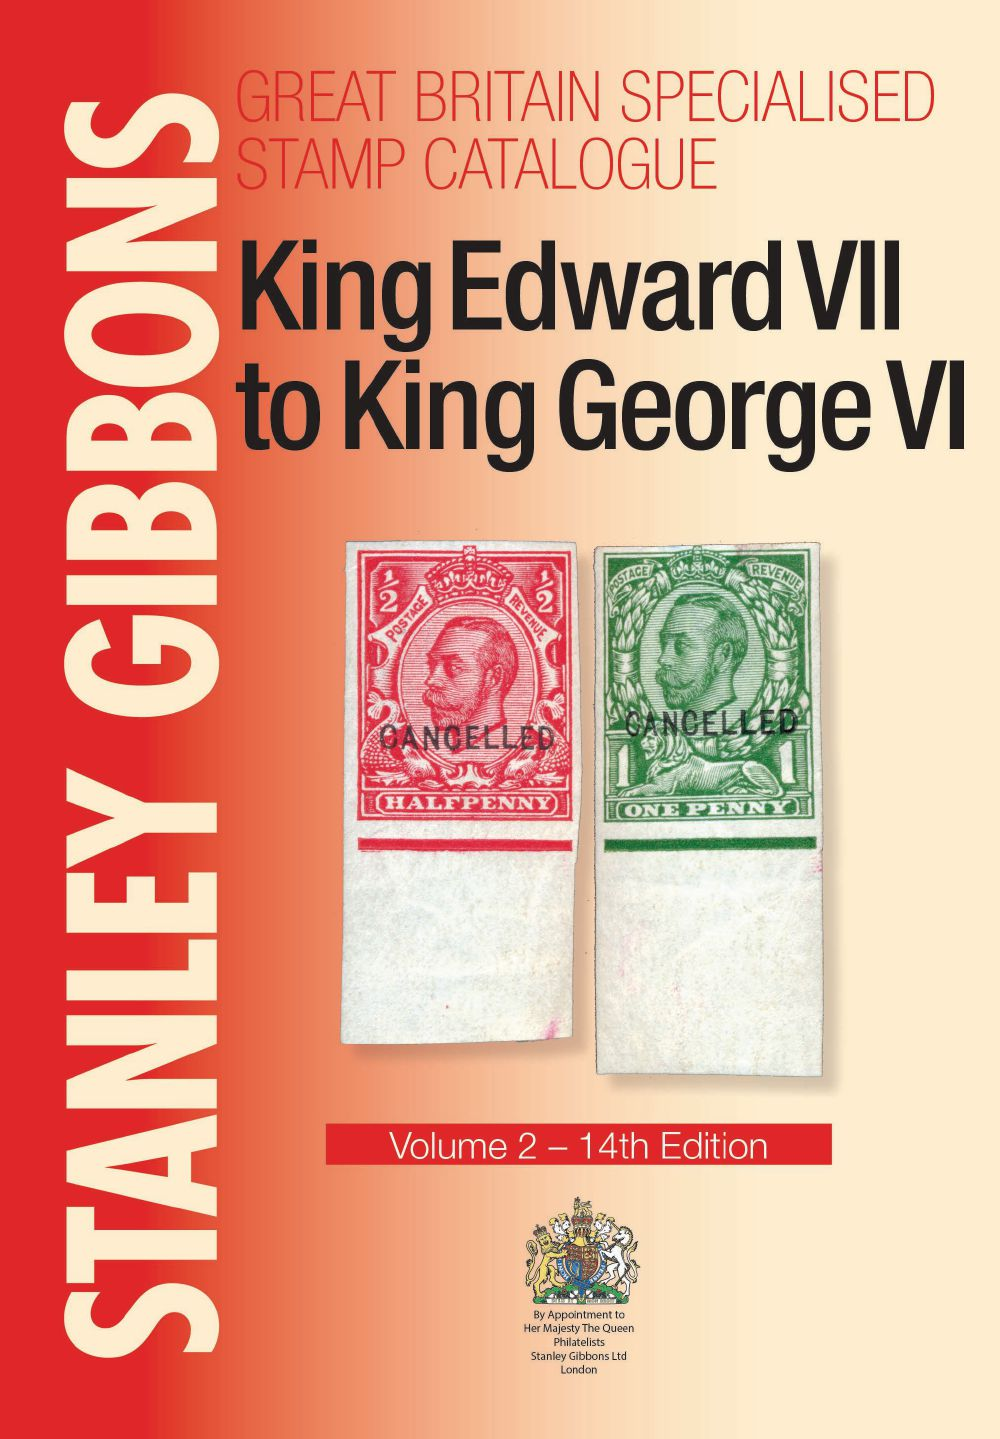 GB Specialised Volume 2 'Four Kings' Stamp Catalogue (14th Edition)